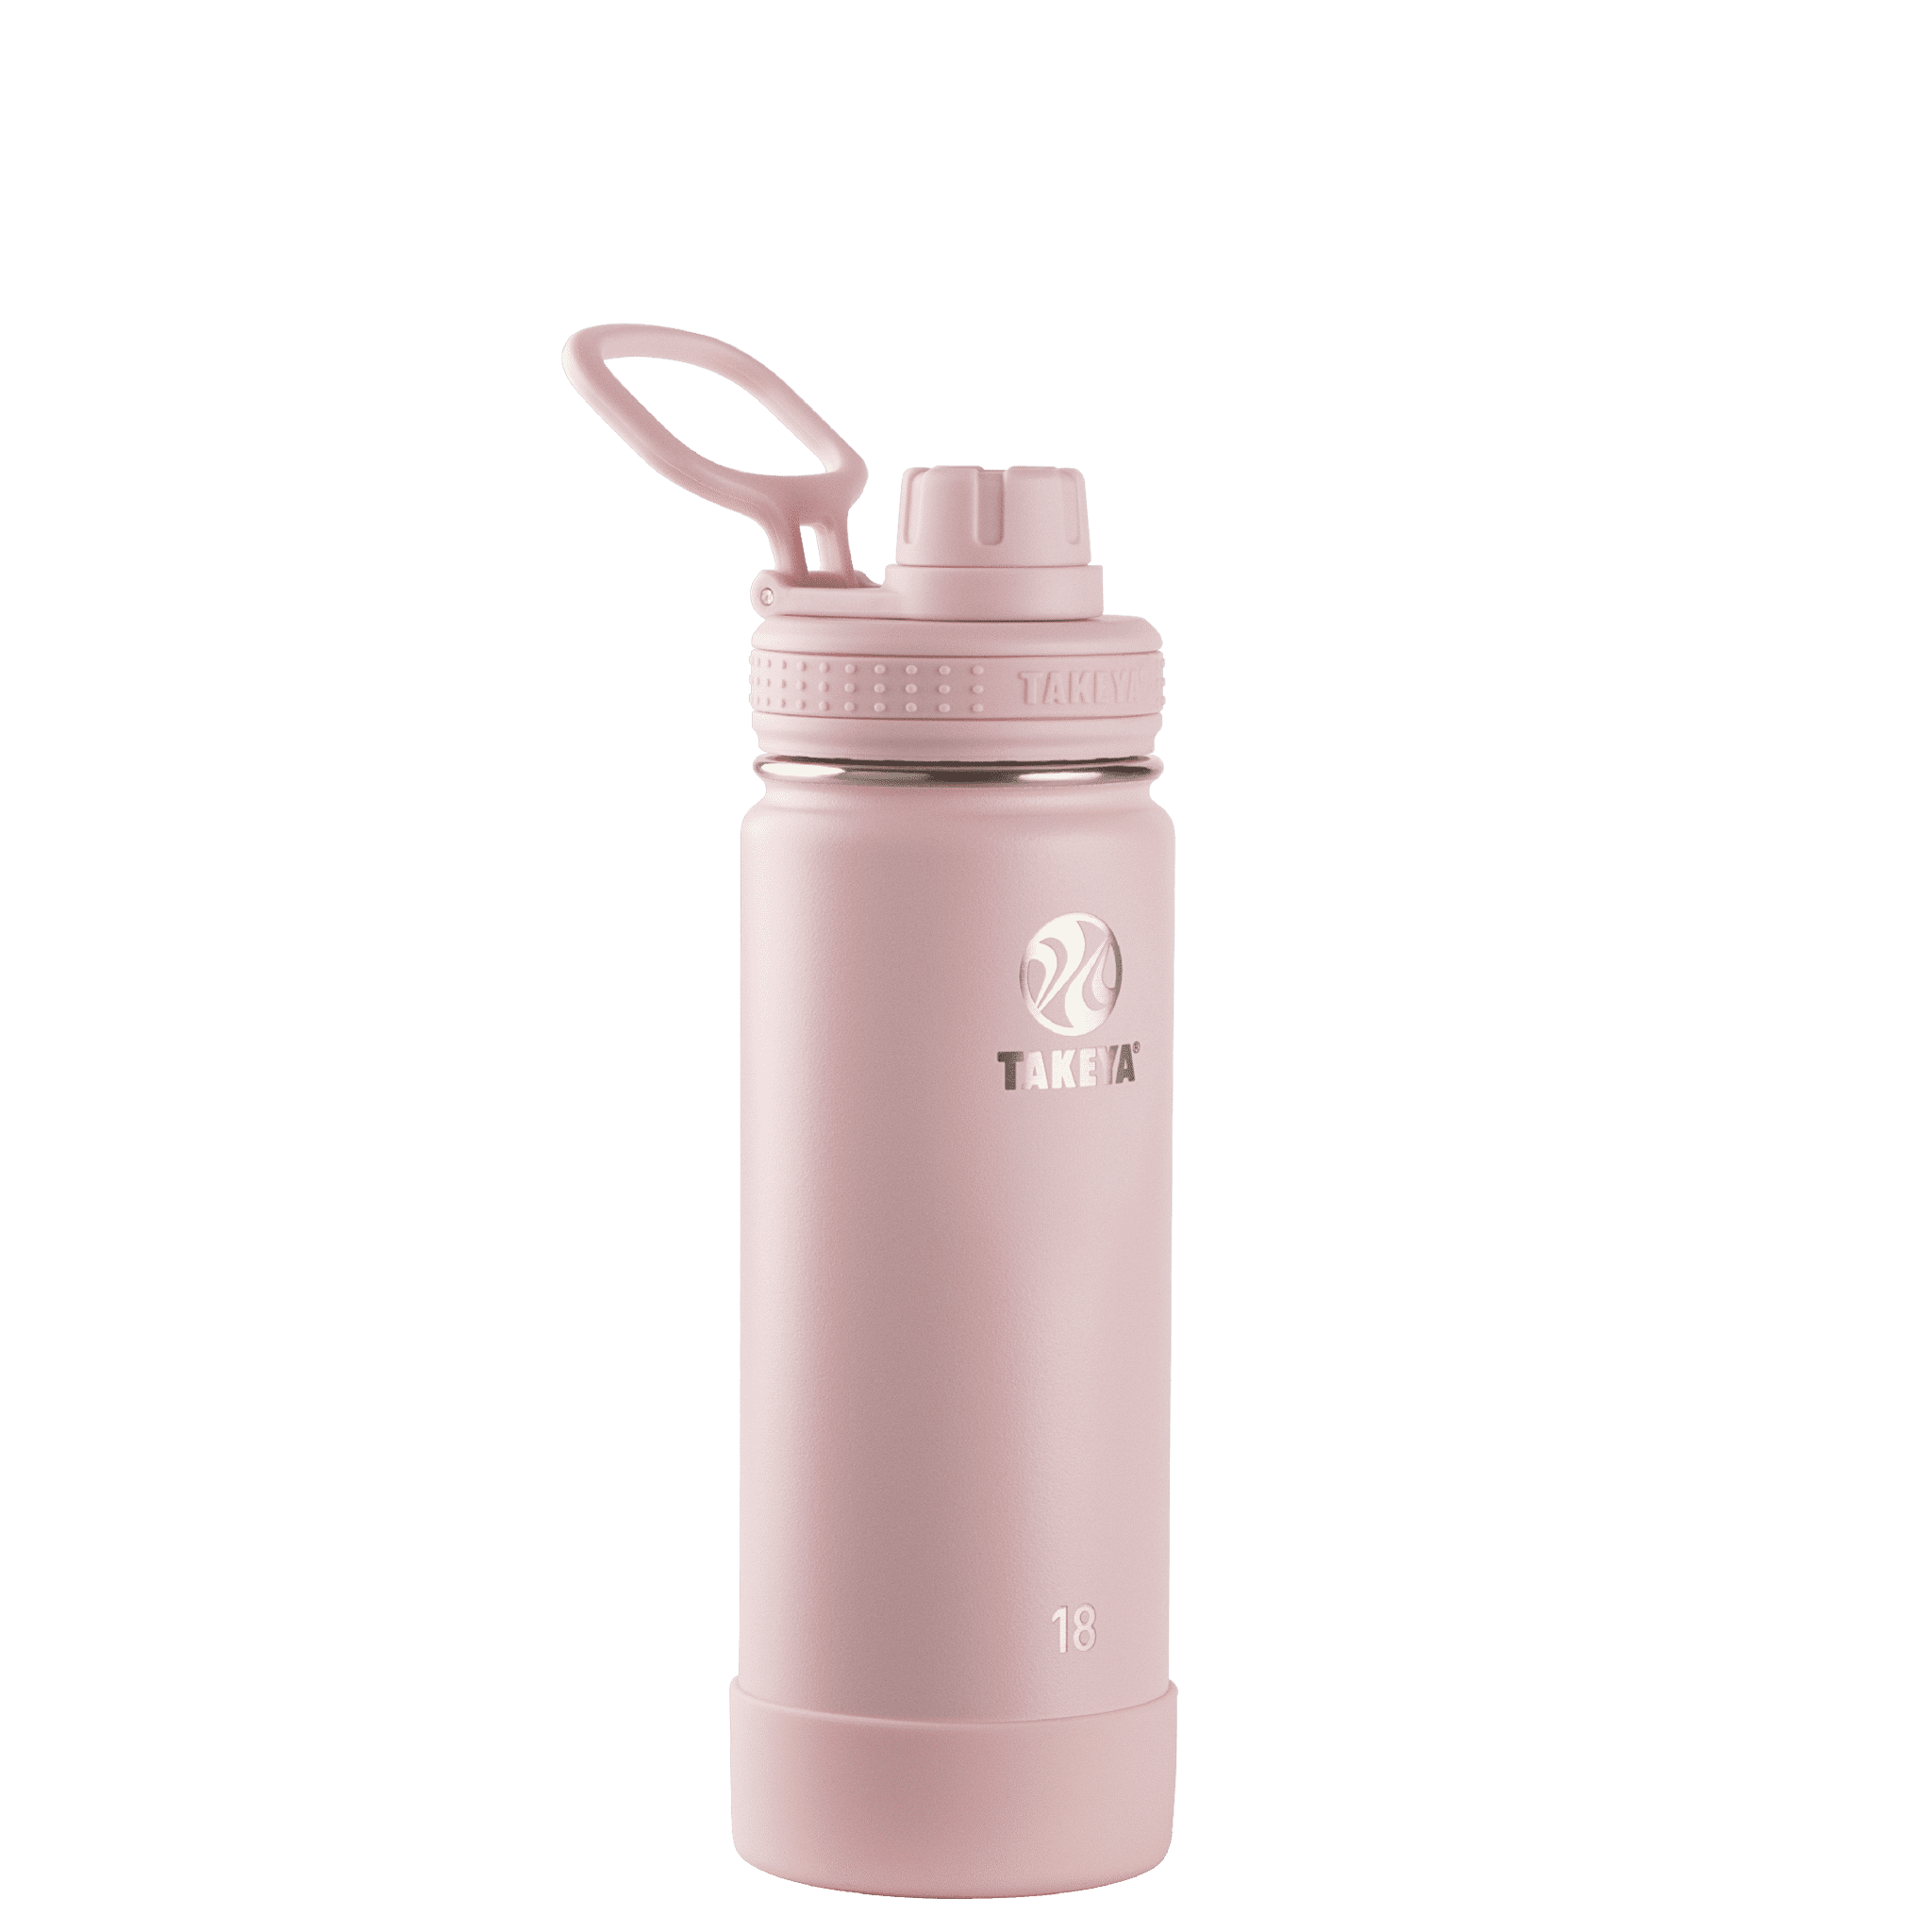 Takeya 18oz Actives Insulated Stainless Steel Water Bottle with Spout Lid - Blush